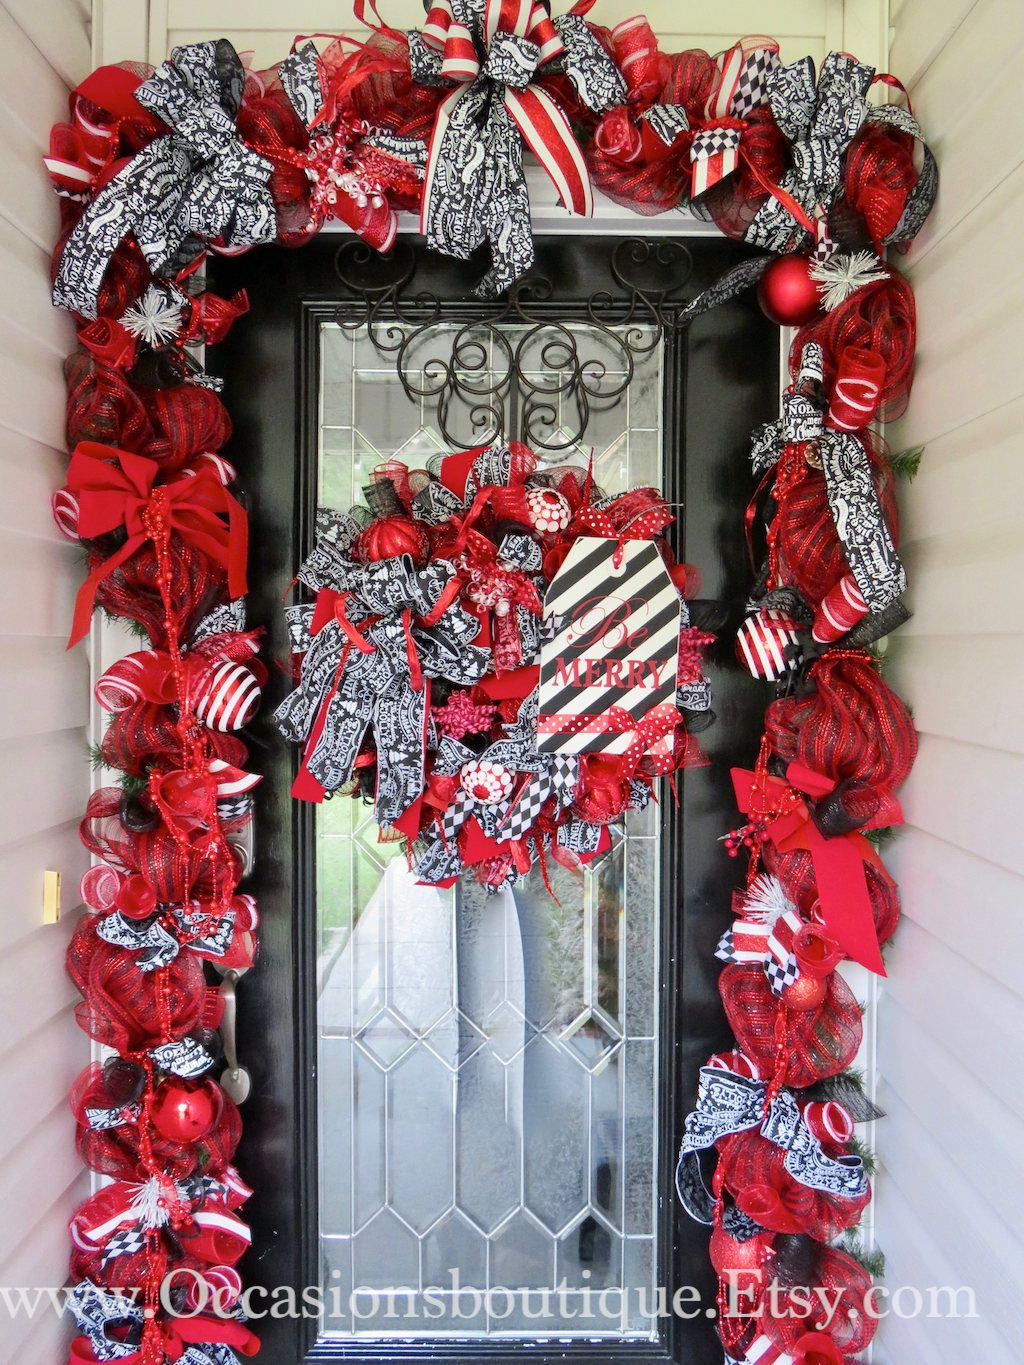 Umbrella Wreath Door Hanger Decor April Showers Red White Black Umbrella Wreath Door Wreaths Diy Hanger Decor